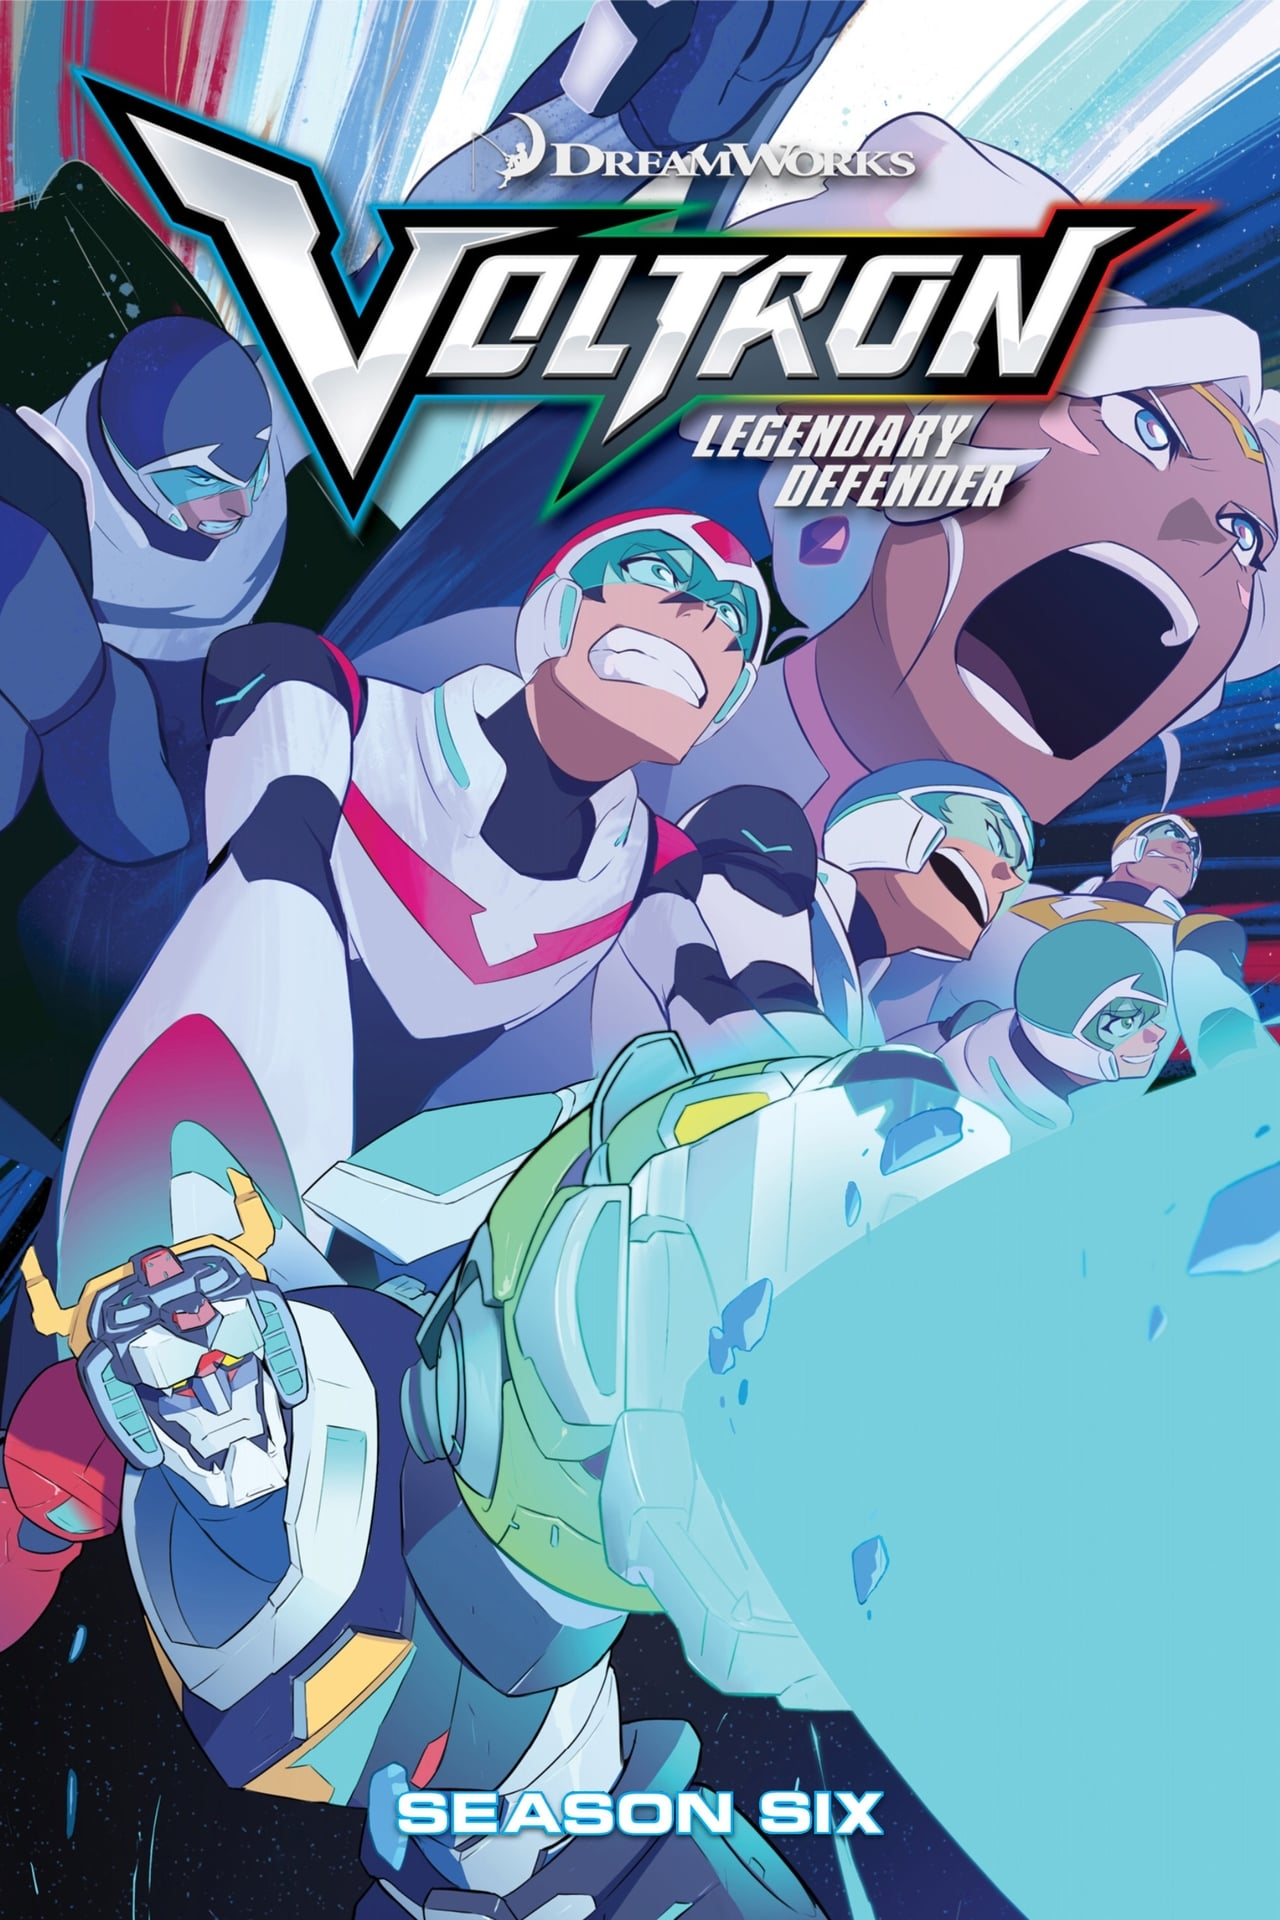 Putlocker Voltron: Legendary Defender Season 6 (2018)